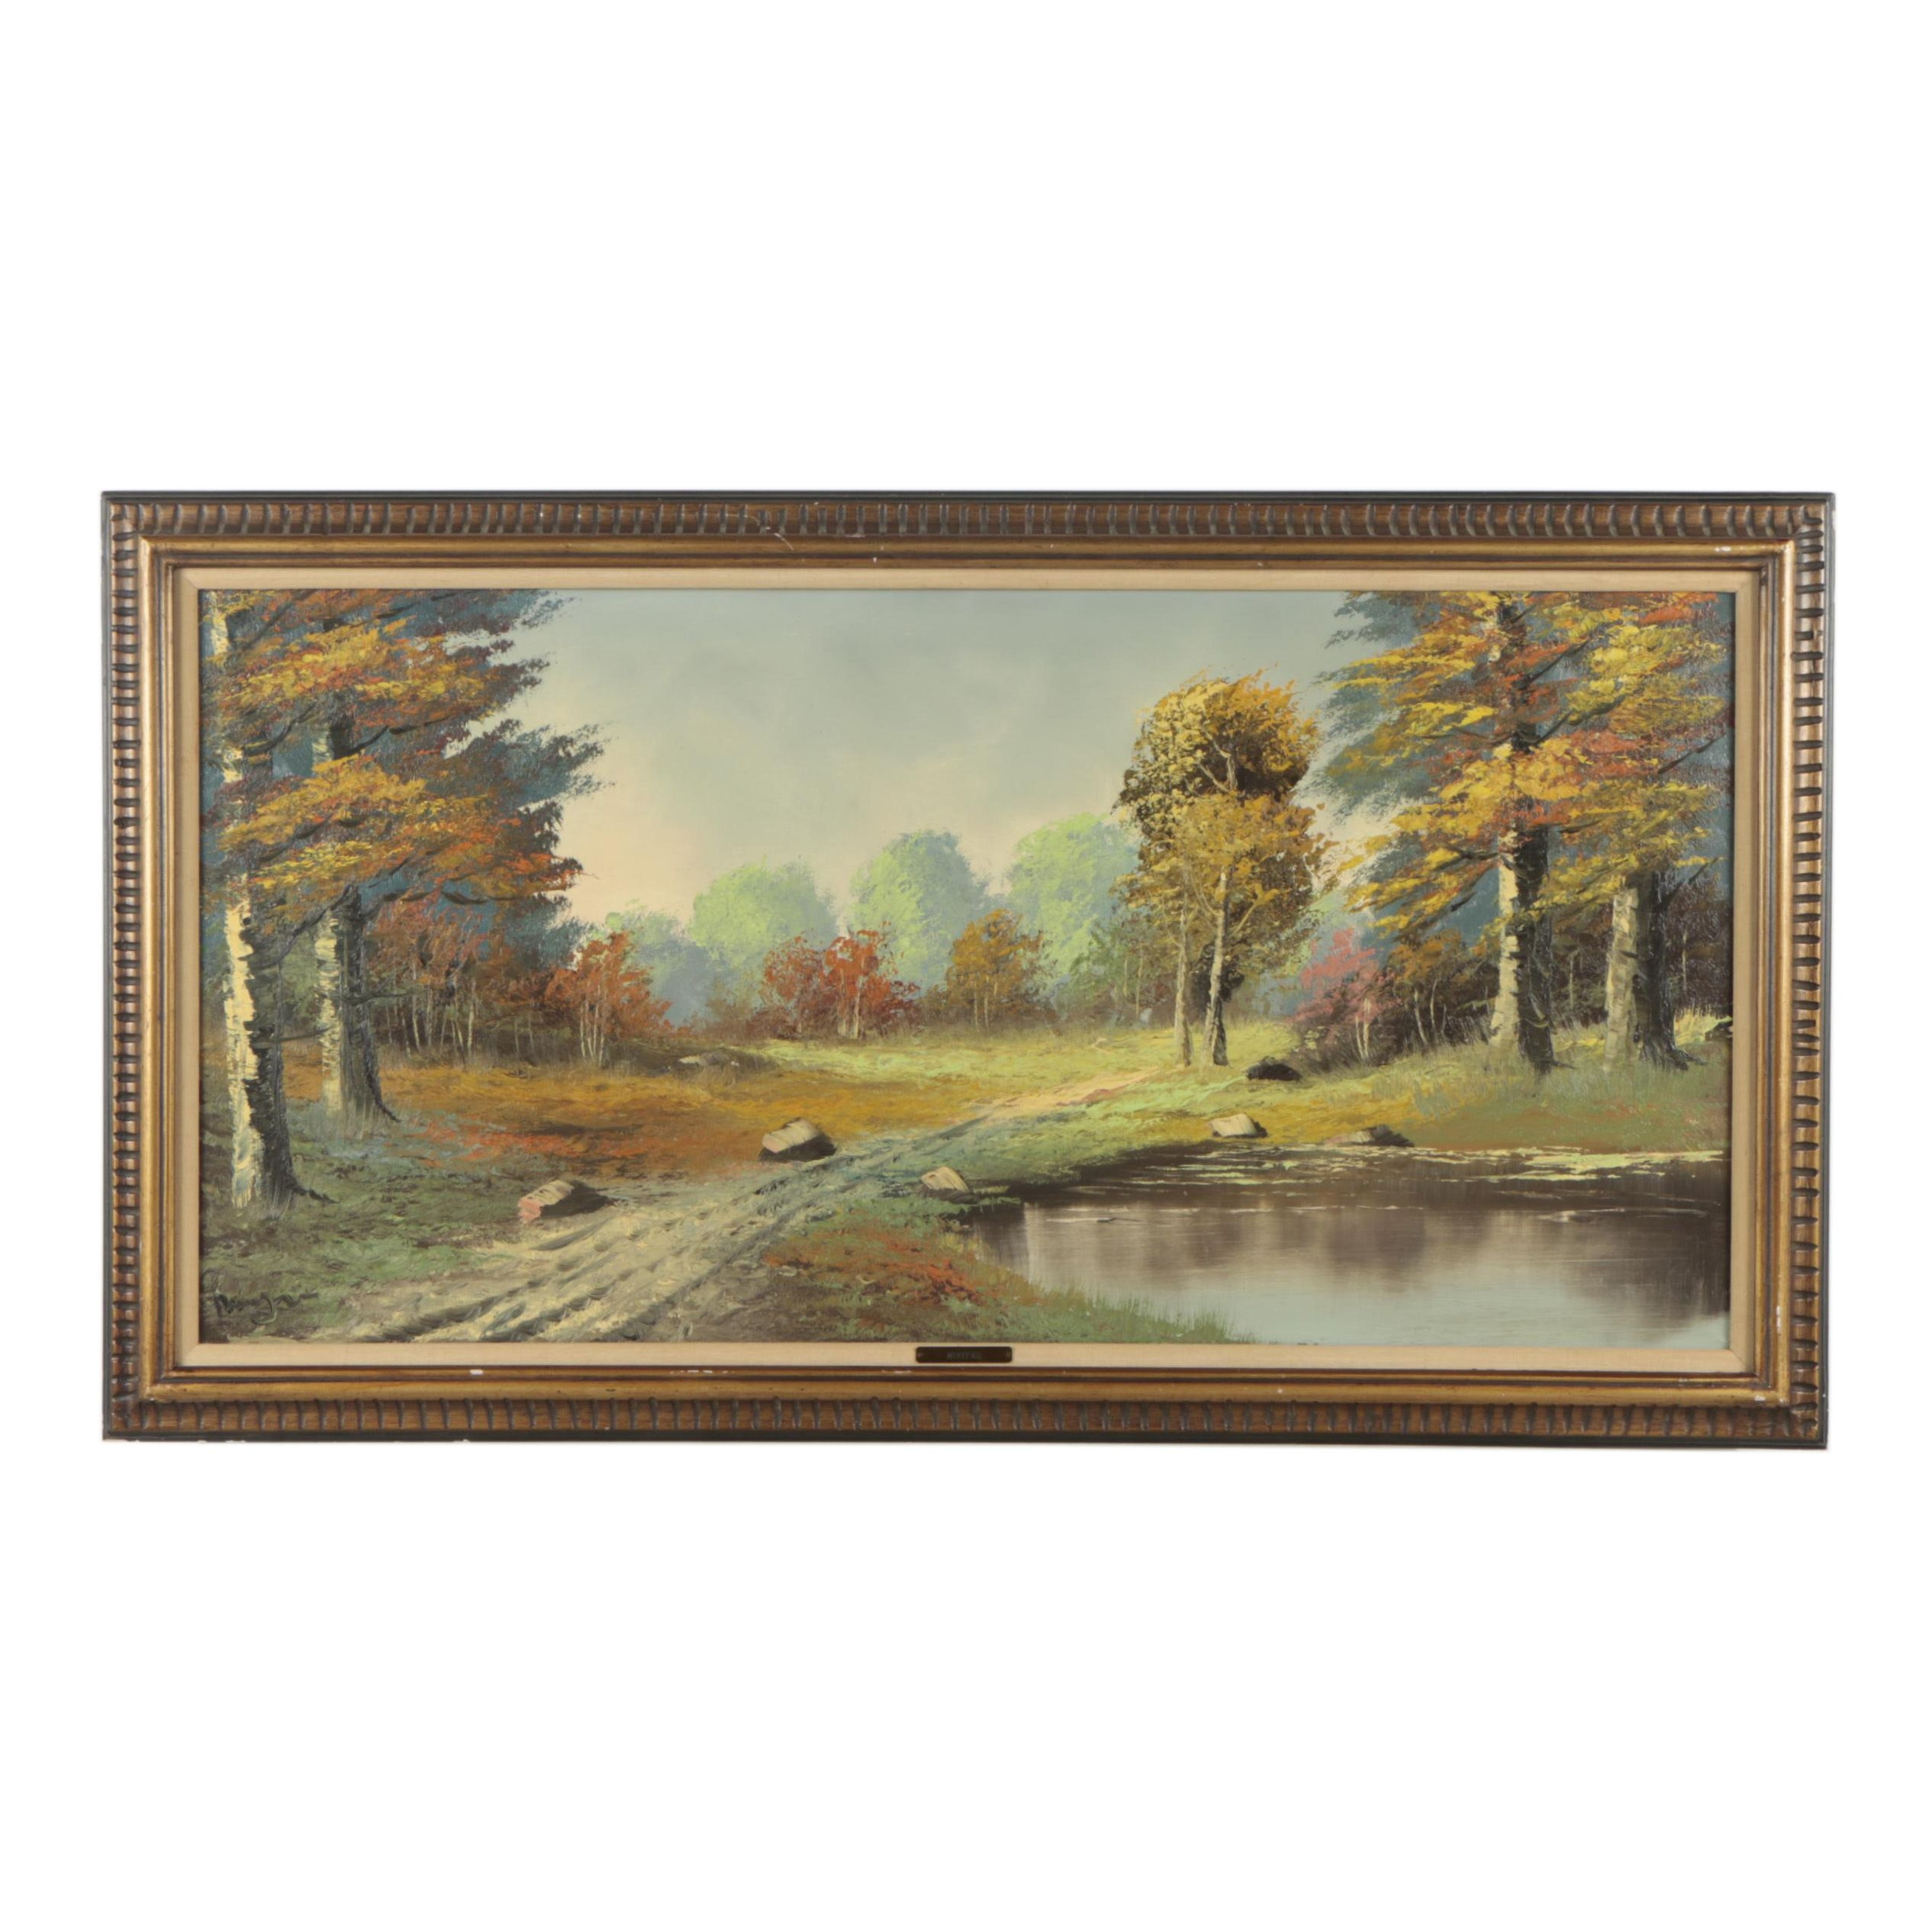 Nooyer Oil on Canvas Landscape Painting